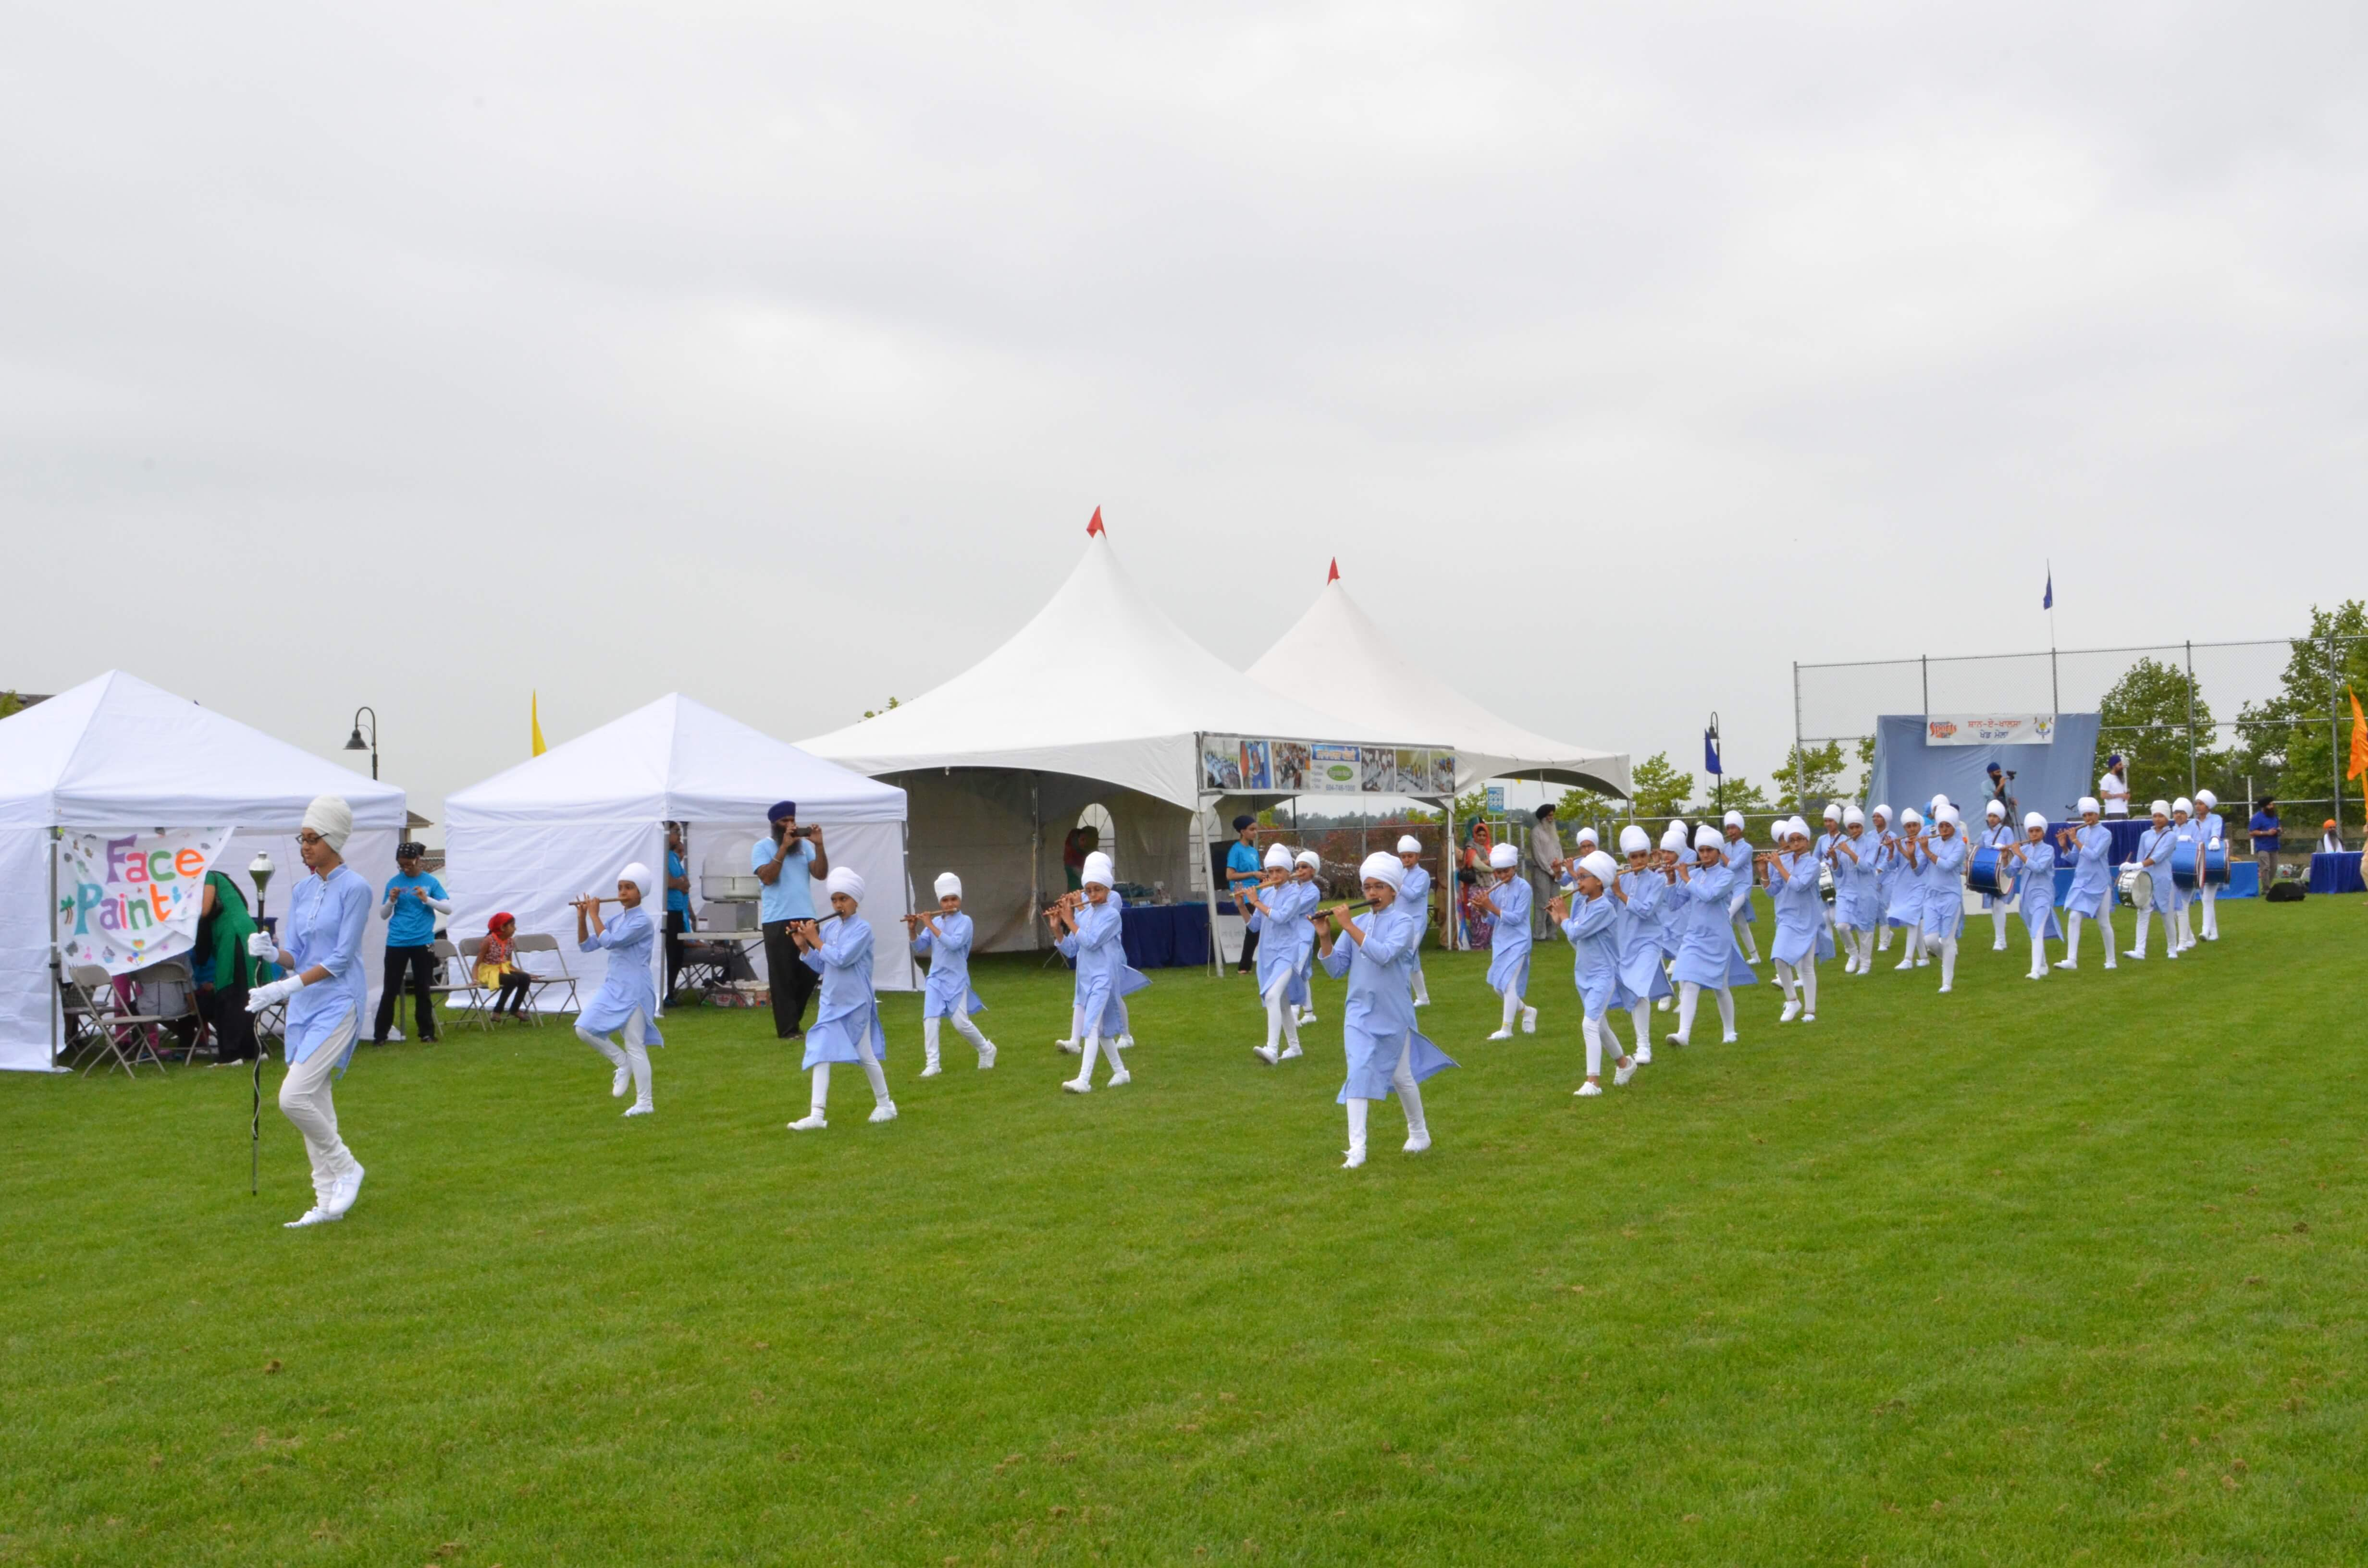 A band team marching on a field